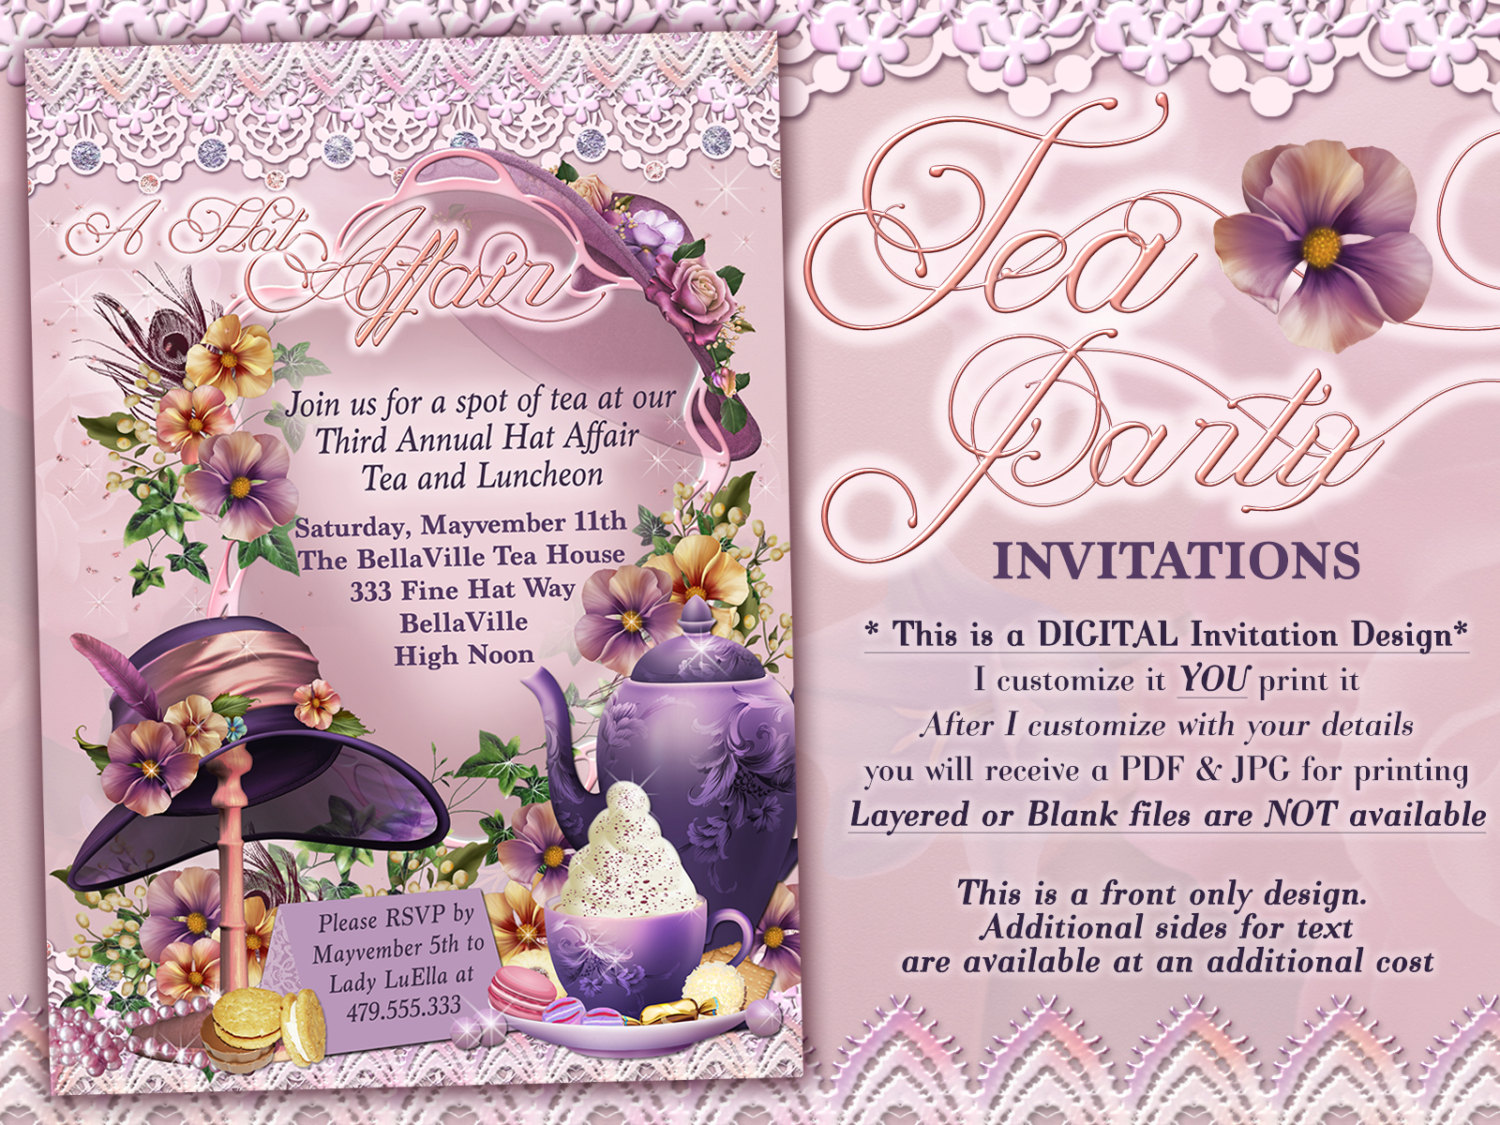 Top 5 Unique Invitation Ideas For A Child\'s Birthday Party